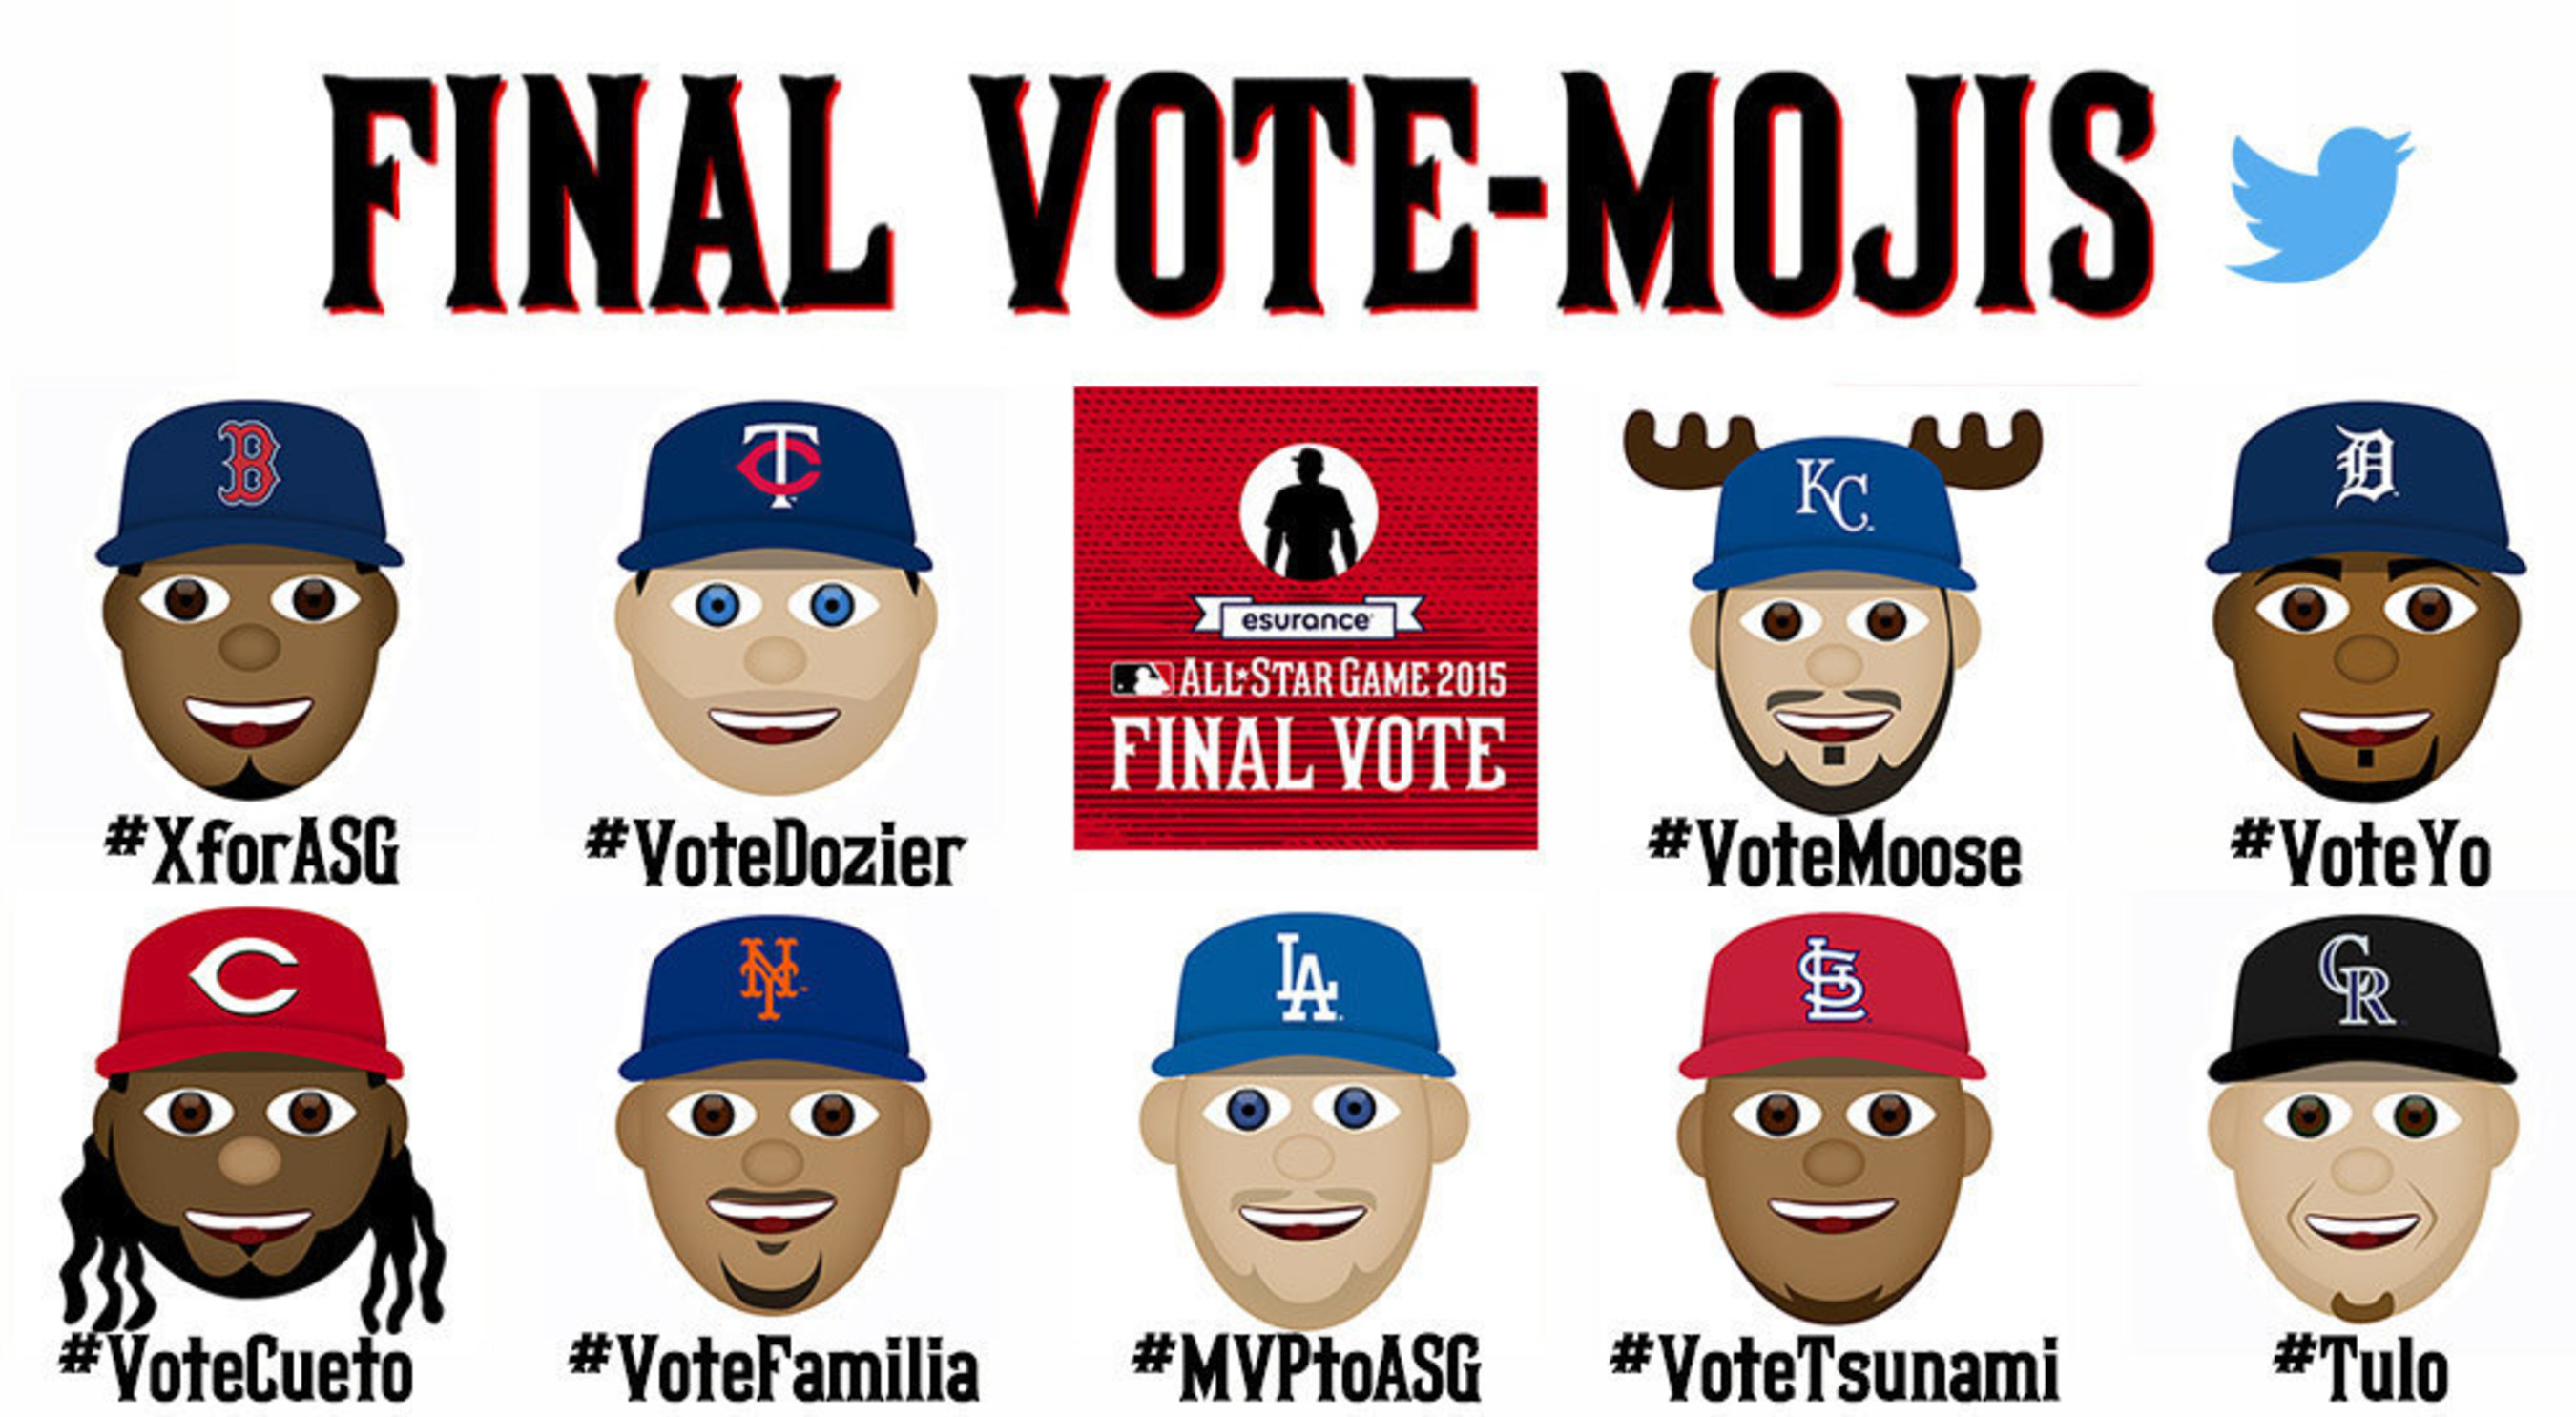 2015 Esurance MLB All-Star Game #FinalVote Enters Final Hours